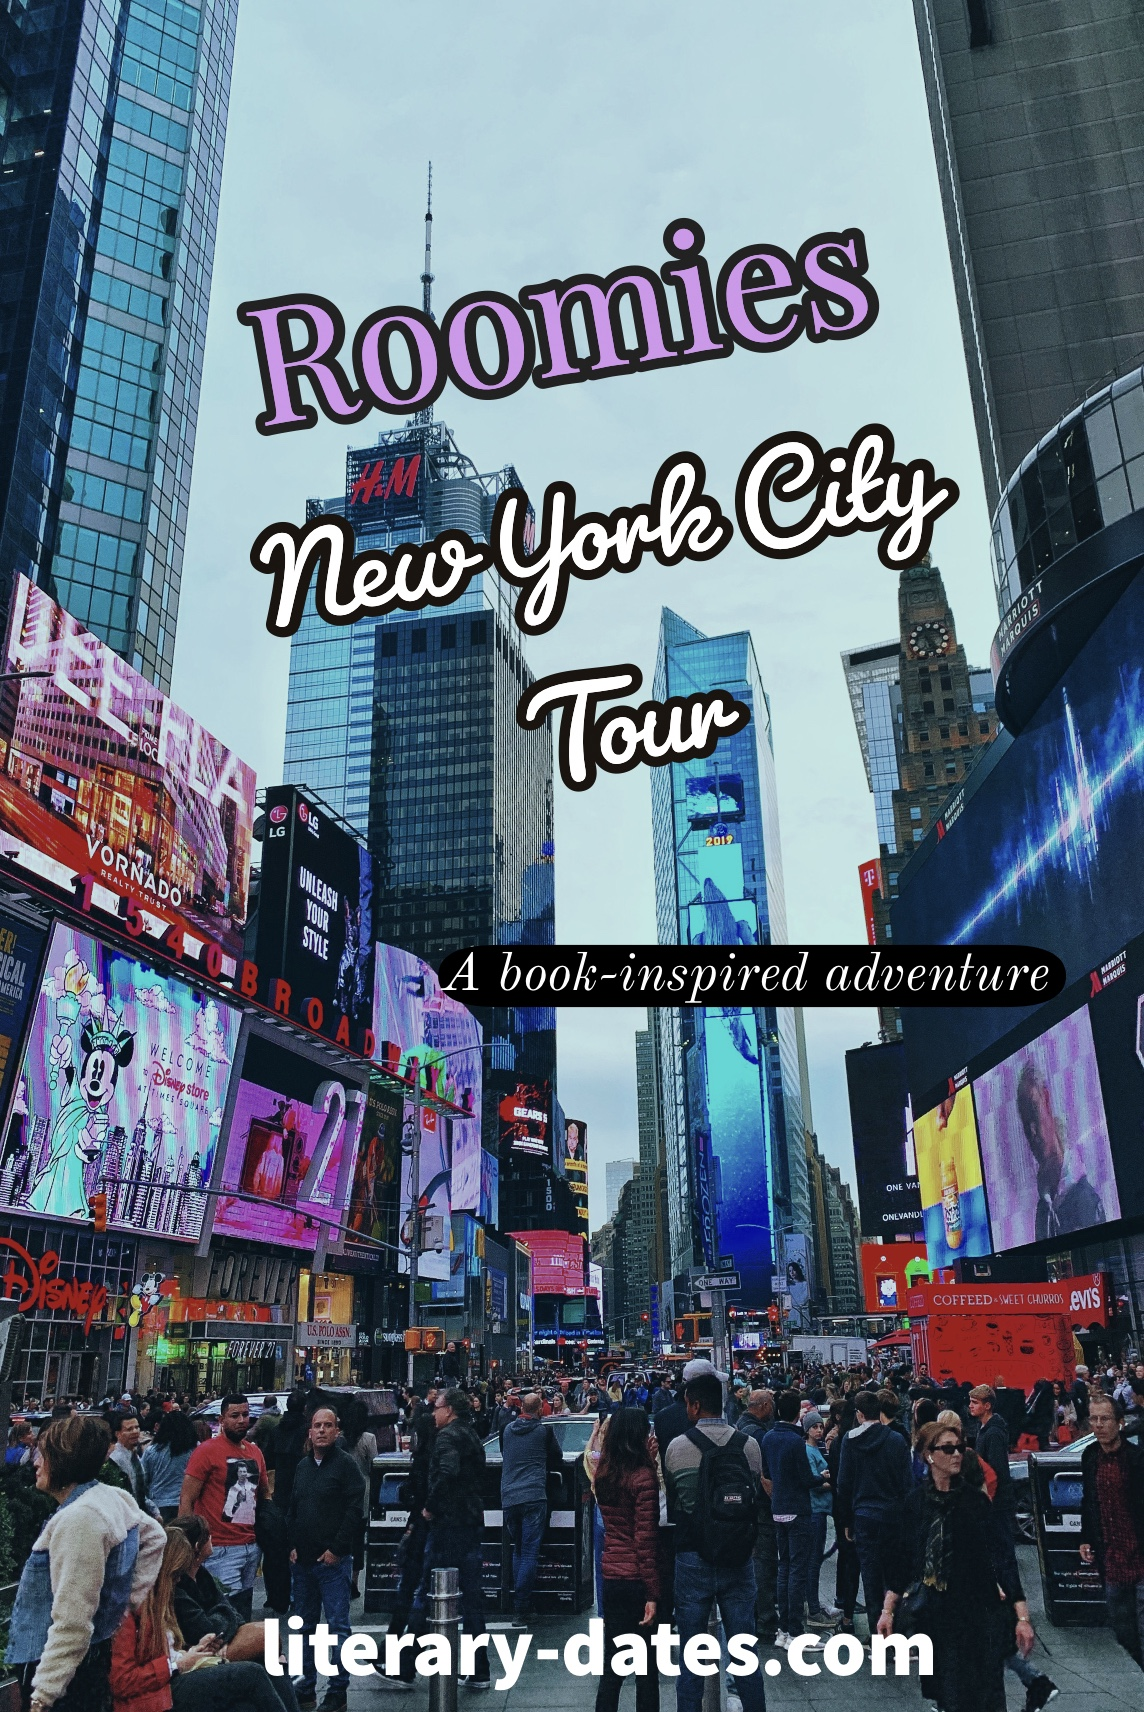 Times Square, Roomies New York City Tour